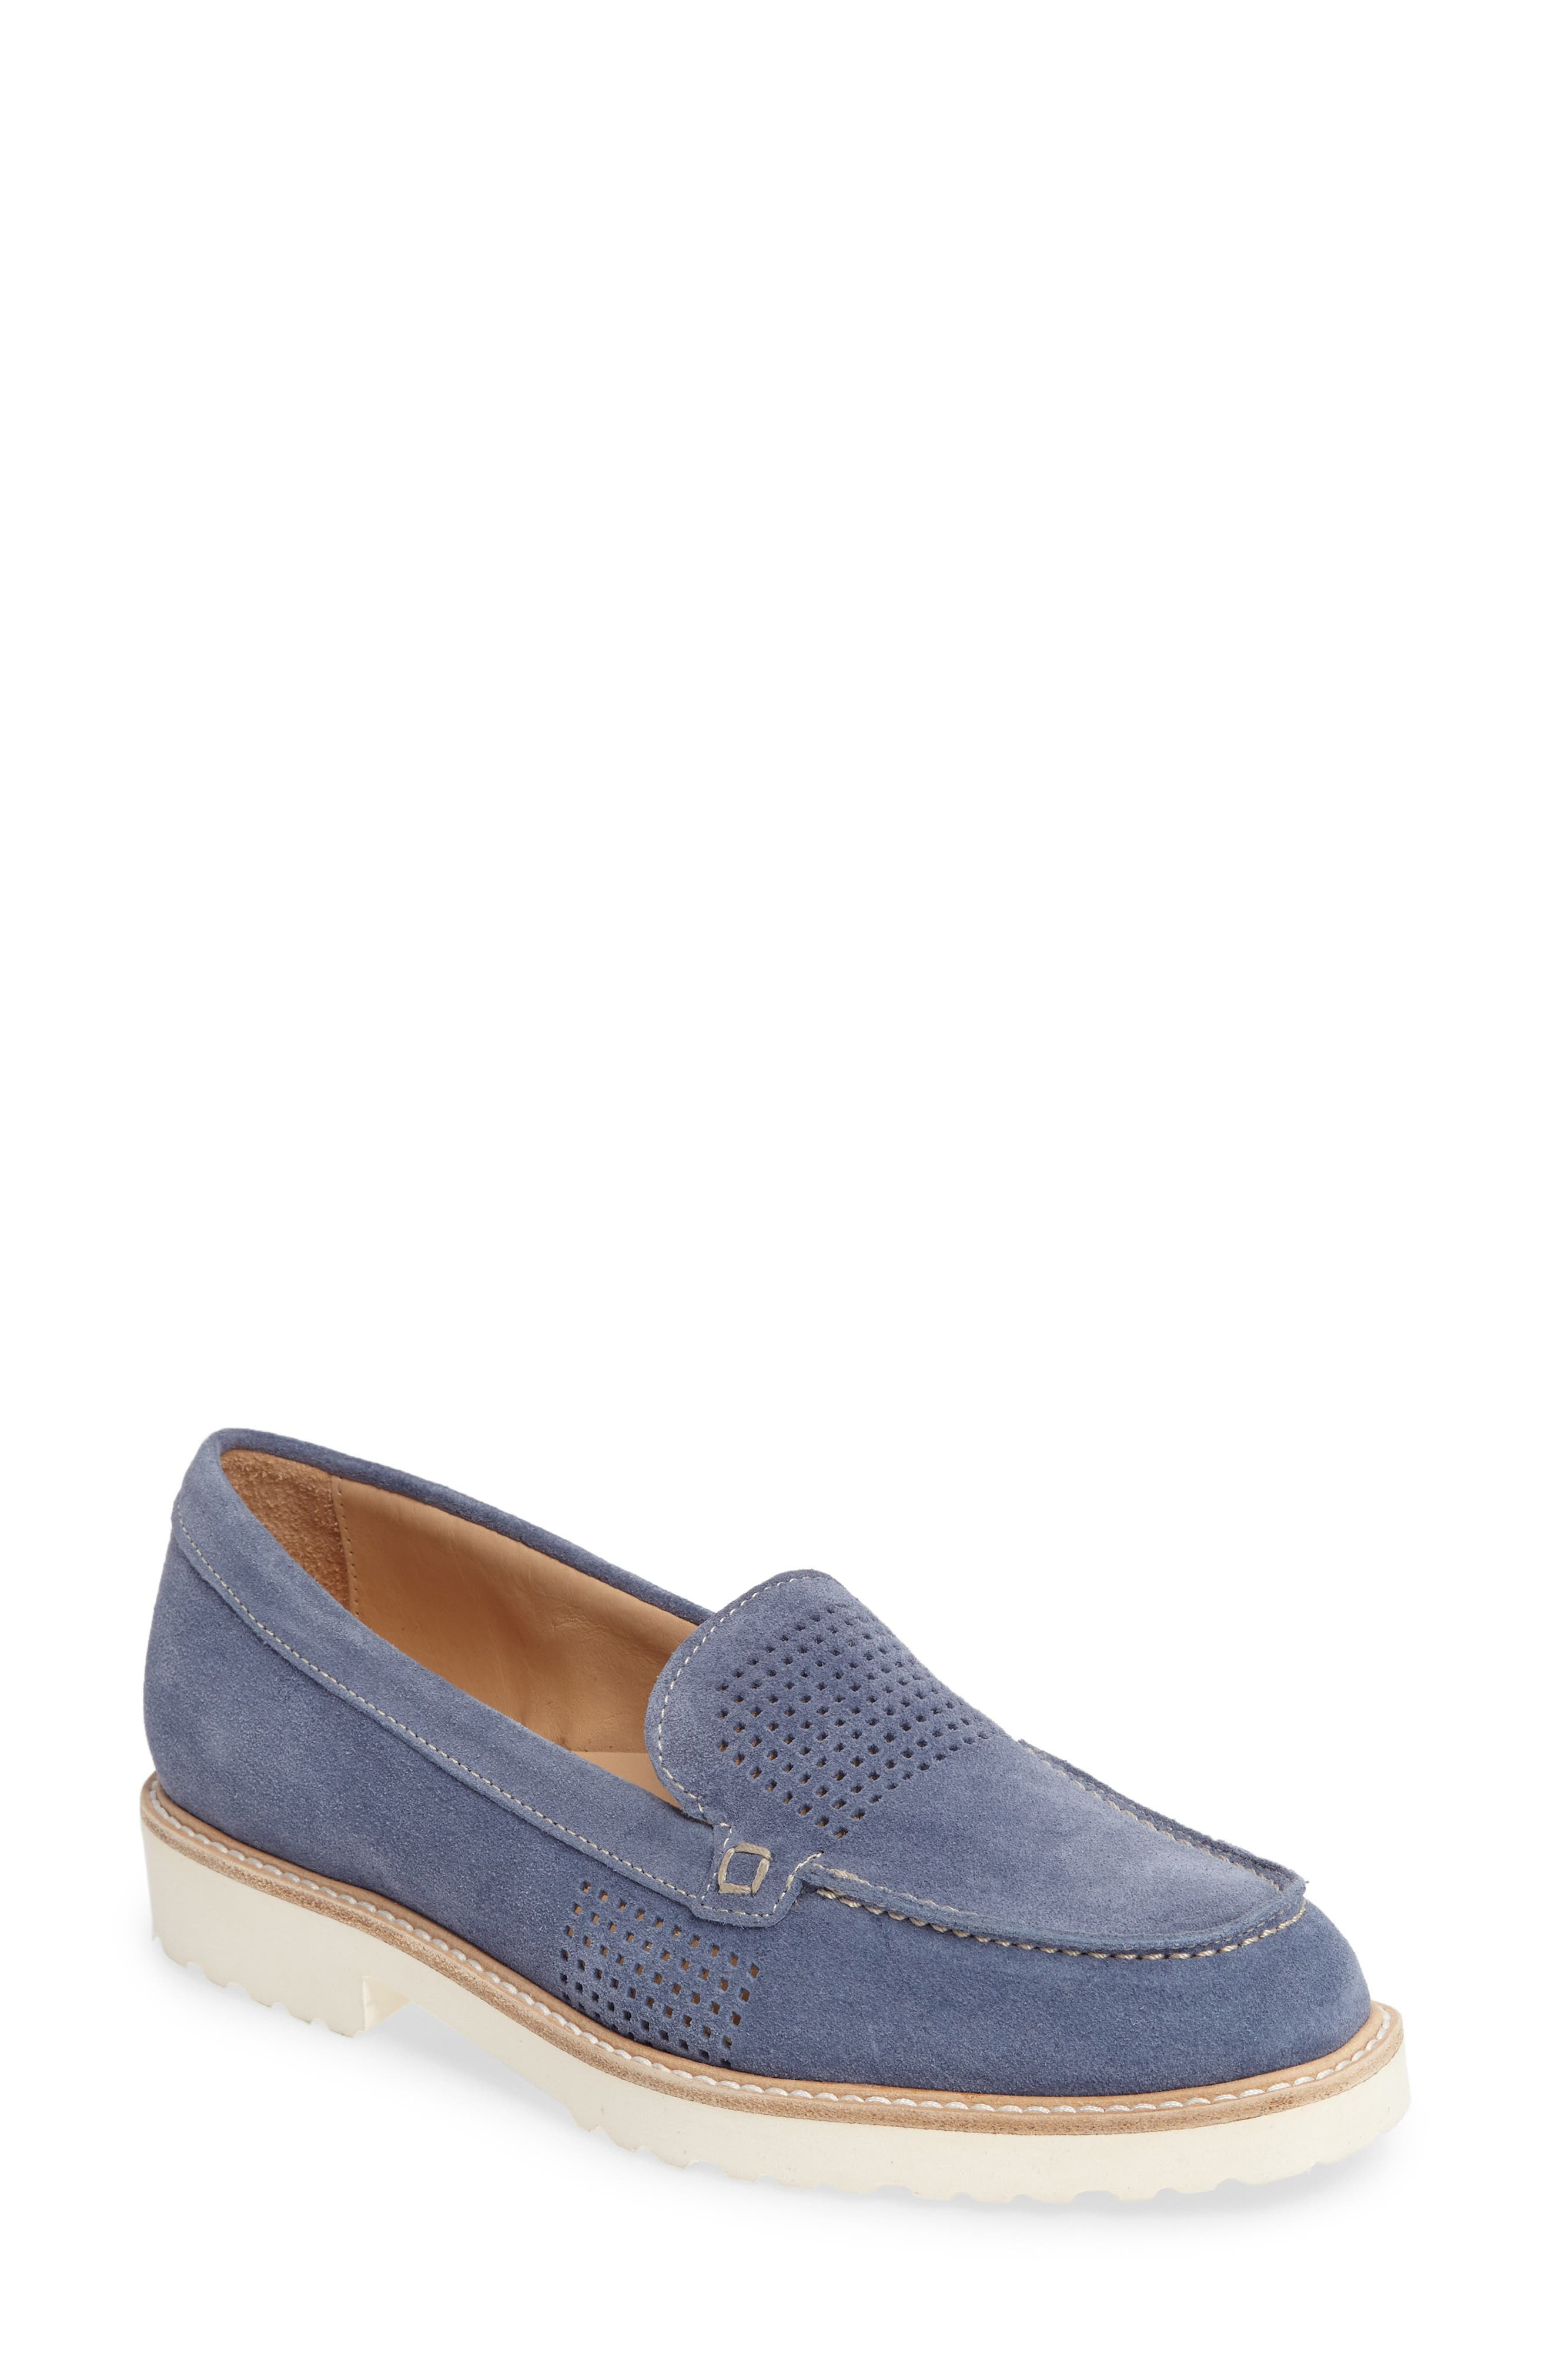 Main Image - Ron White Wazzy Loafer (Women)